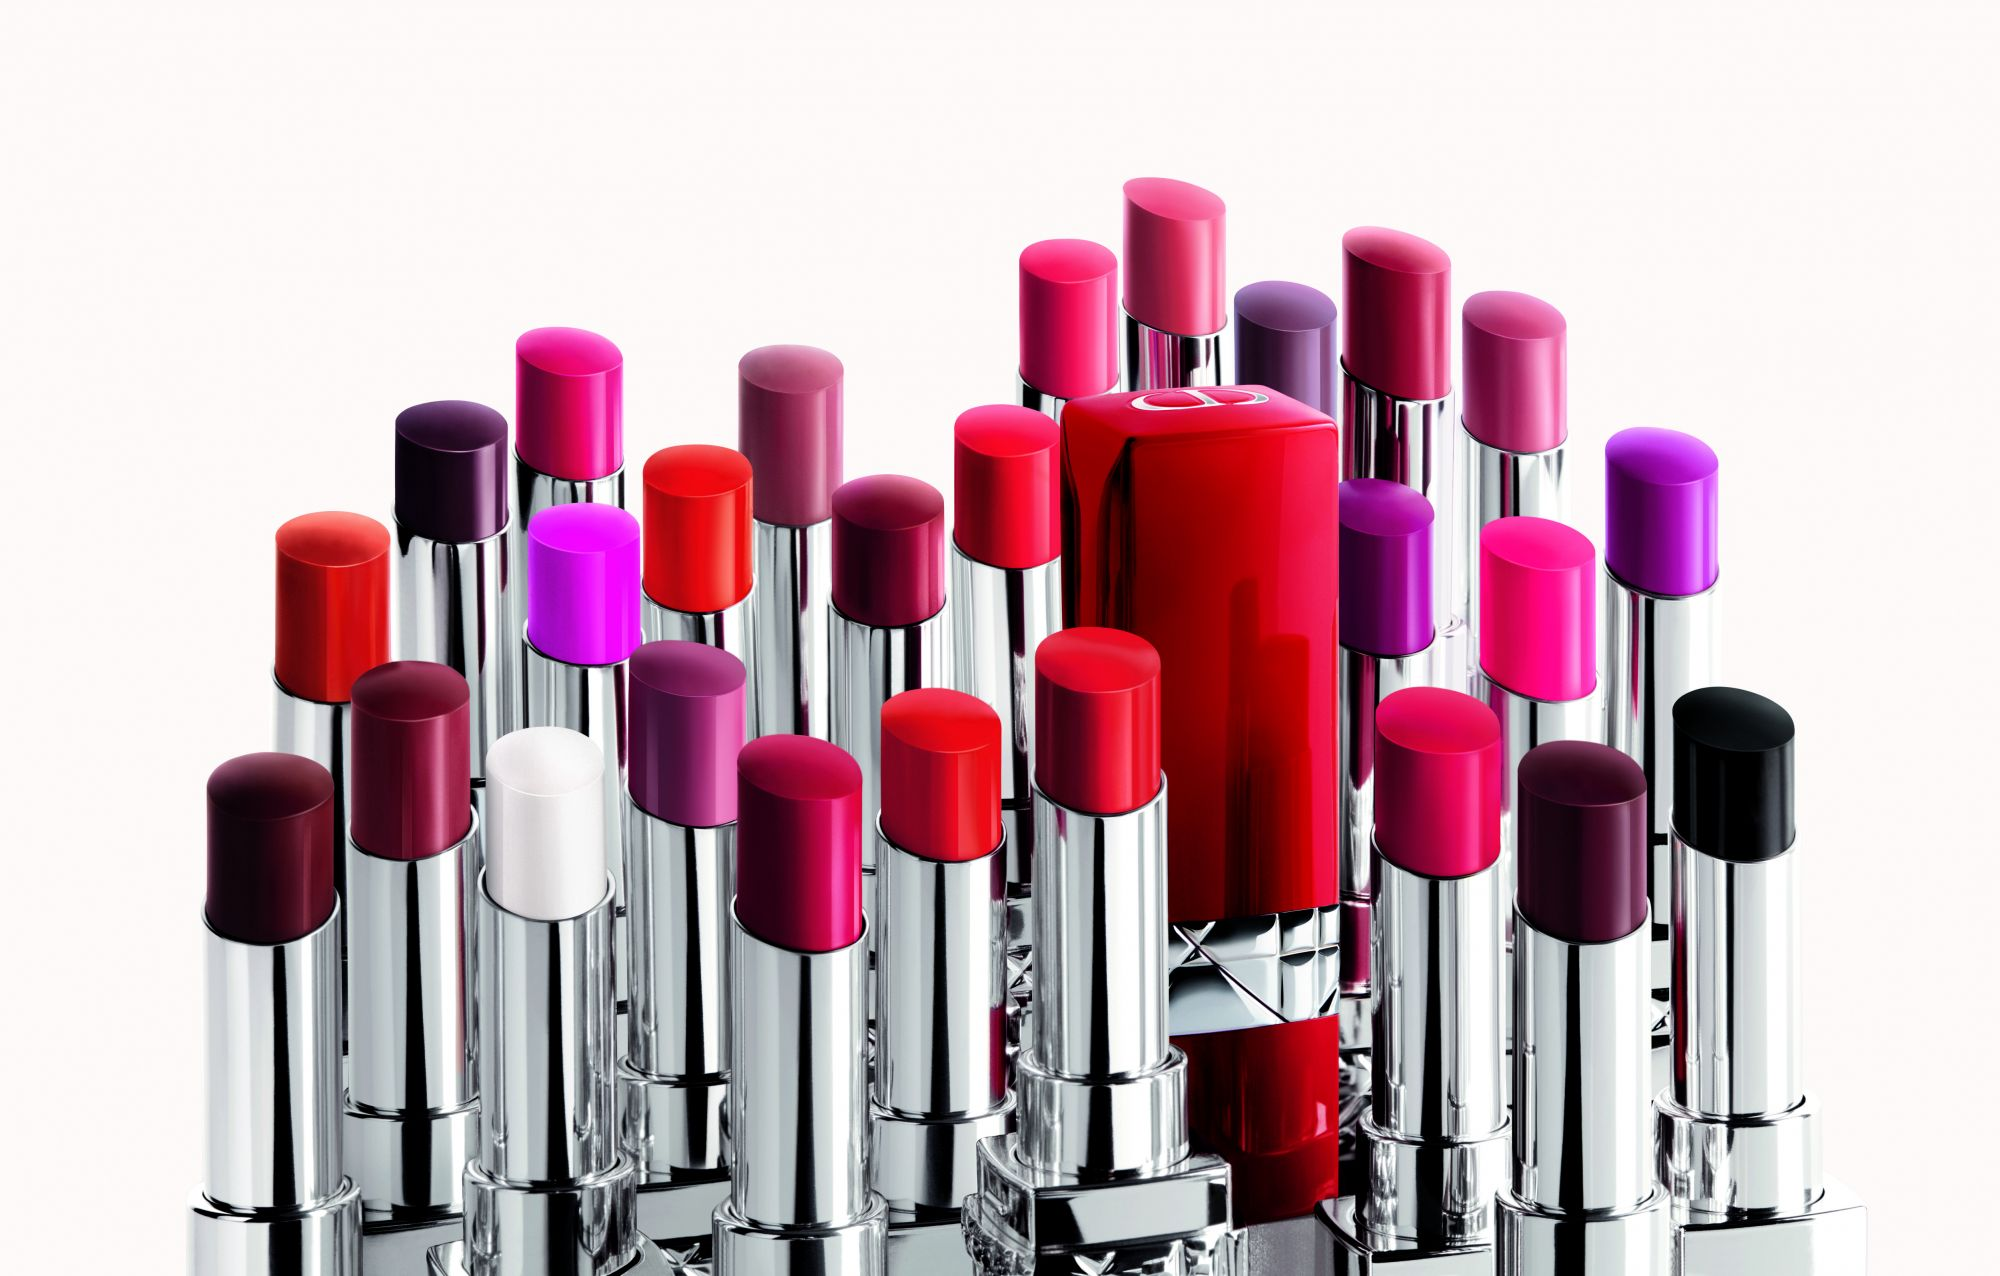 7 New Lipsticks You Should Try This Fall